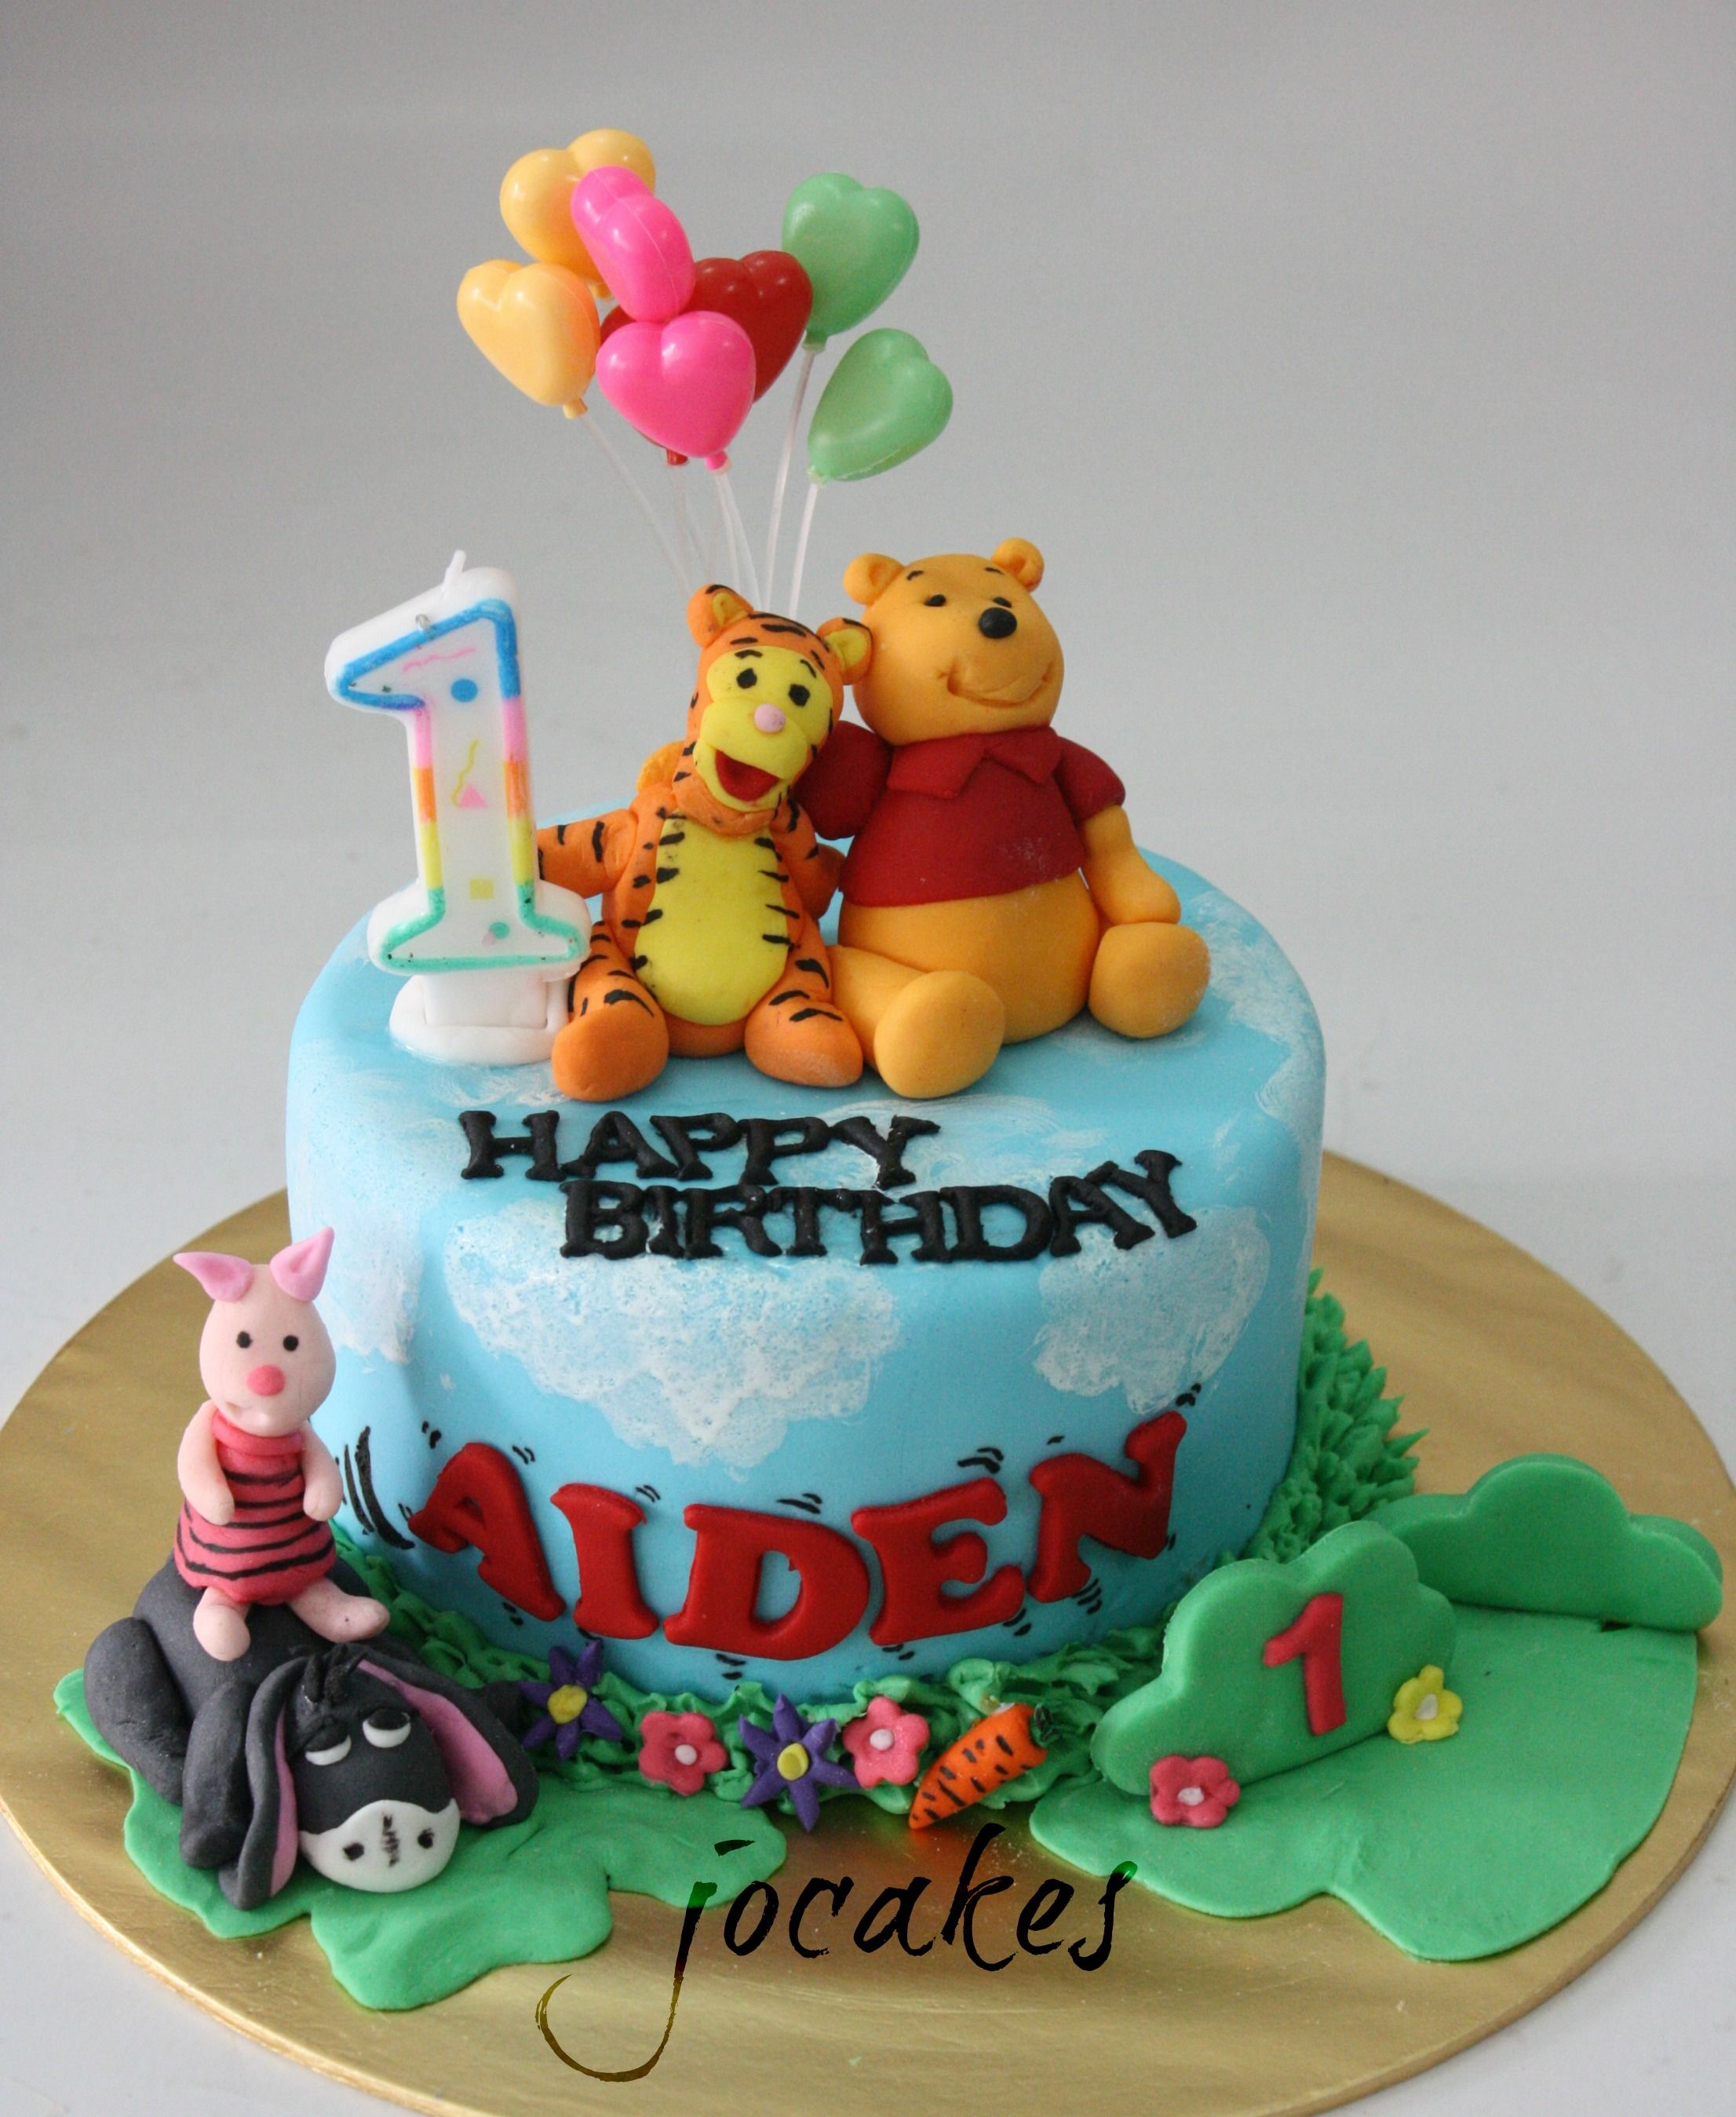 oneyearoldboybirthdaycake Winnie the Pooh and friends cake